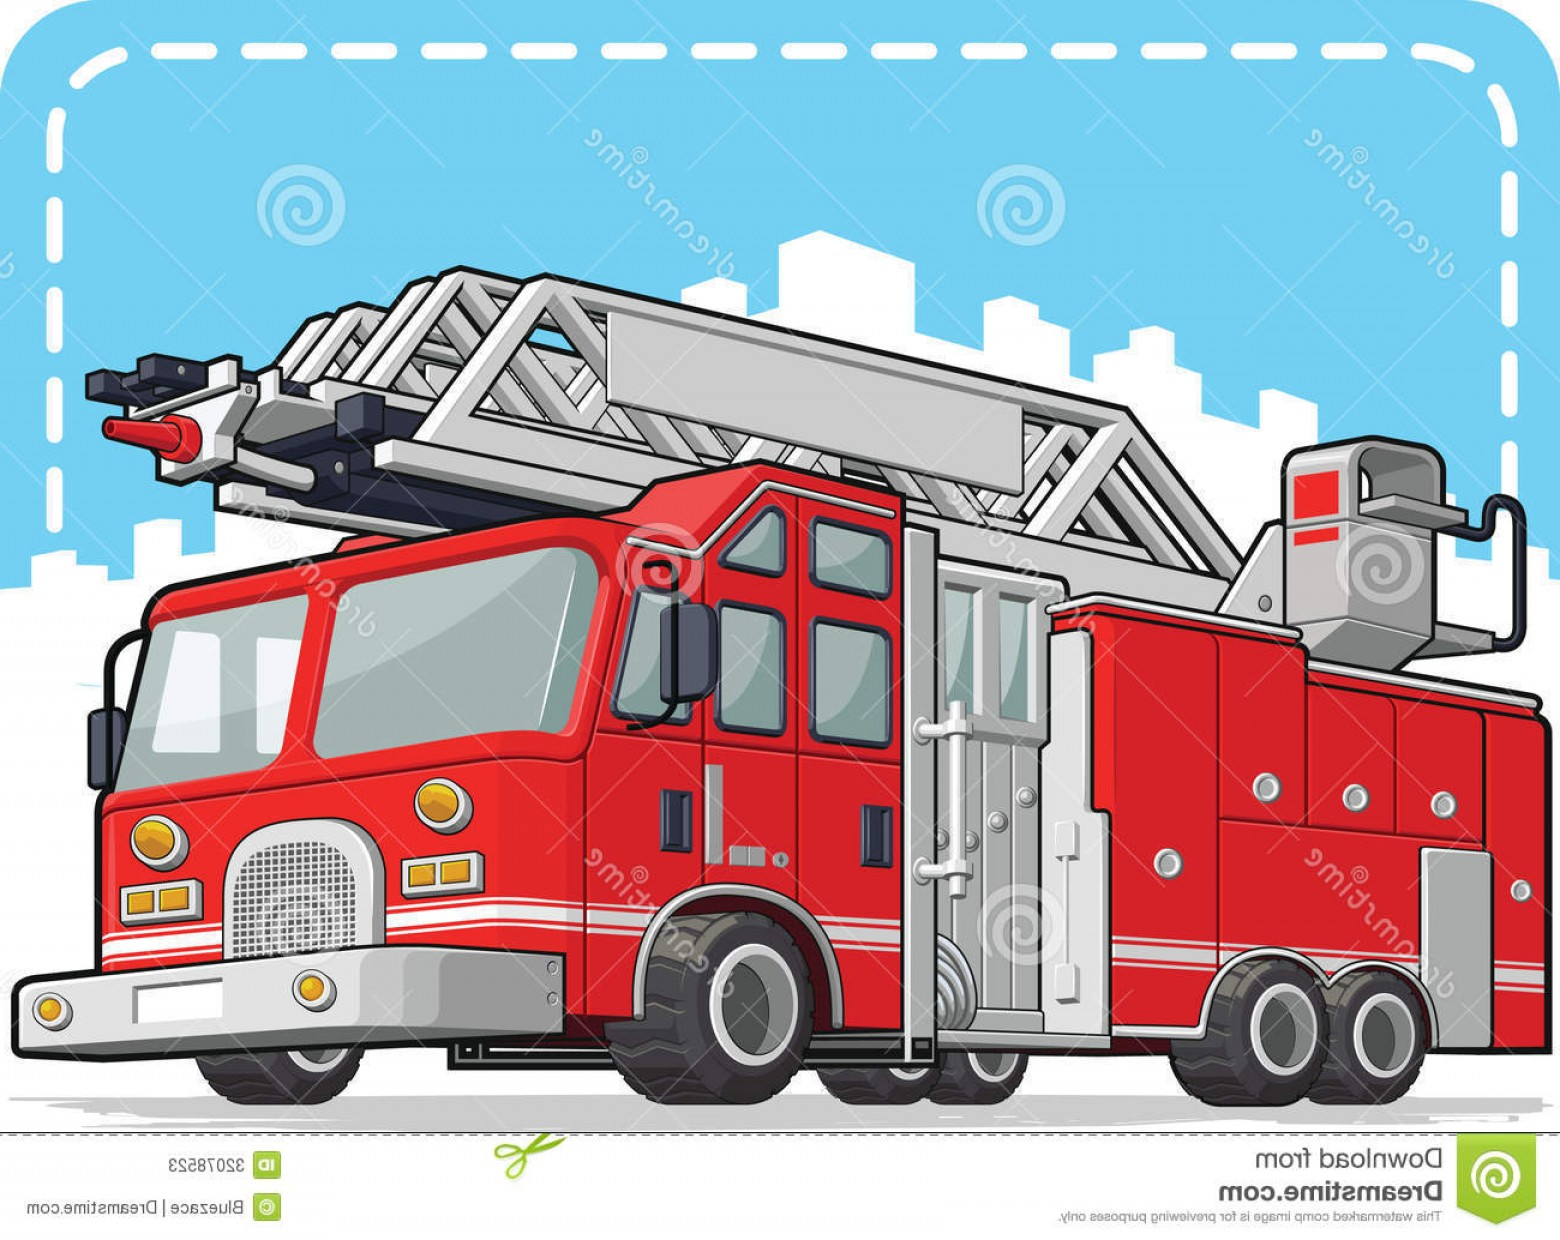 Fire Truck Vector Art: Stock Photos Red Fire Truck Fire Engine Vector Image Available As Vector Eps Format Can Be Scaled To Any Size Loss Image